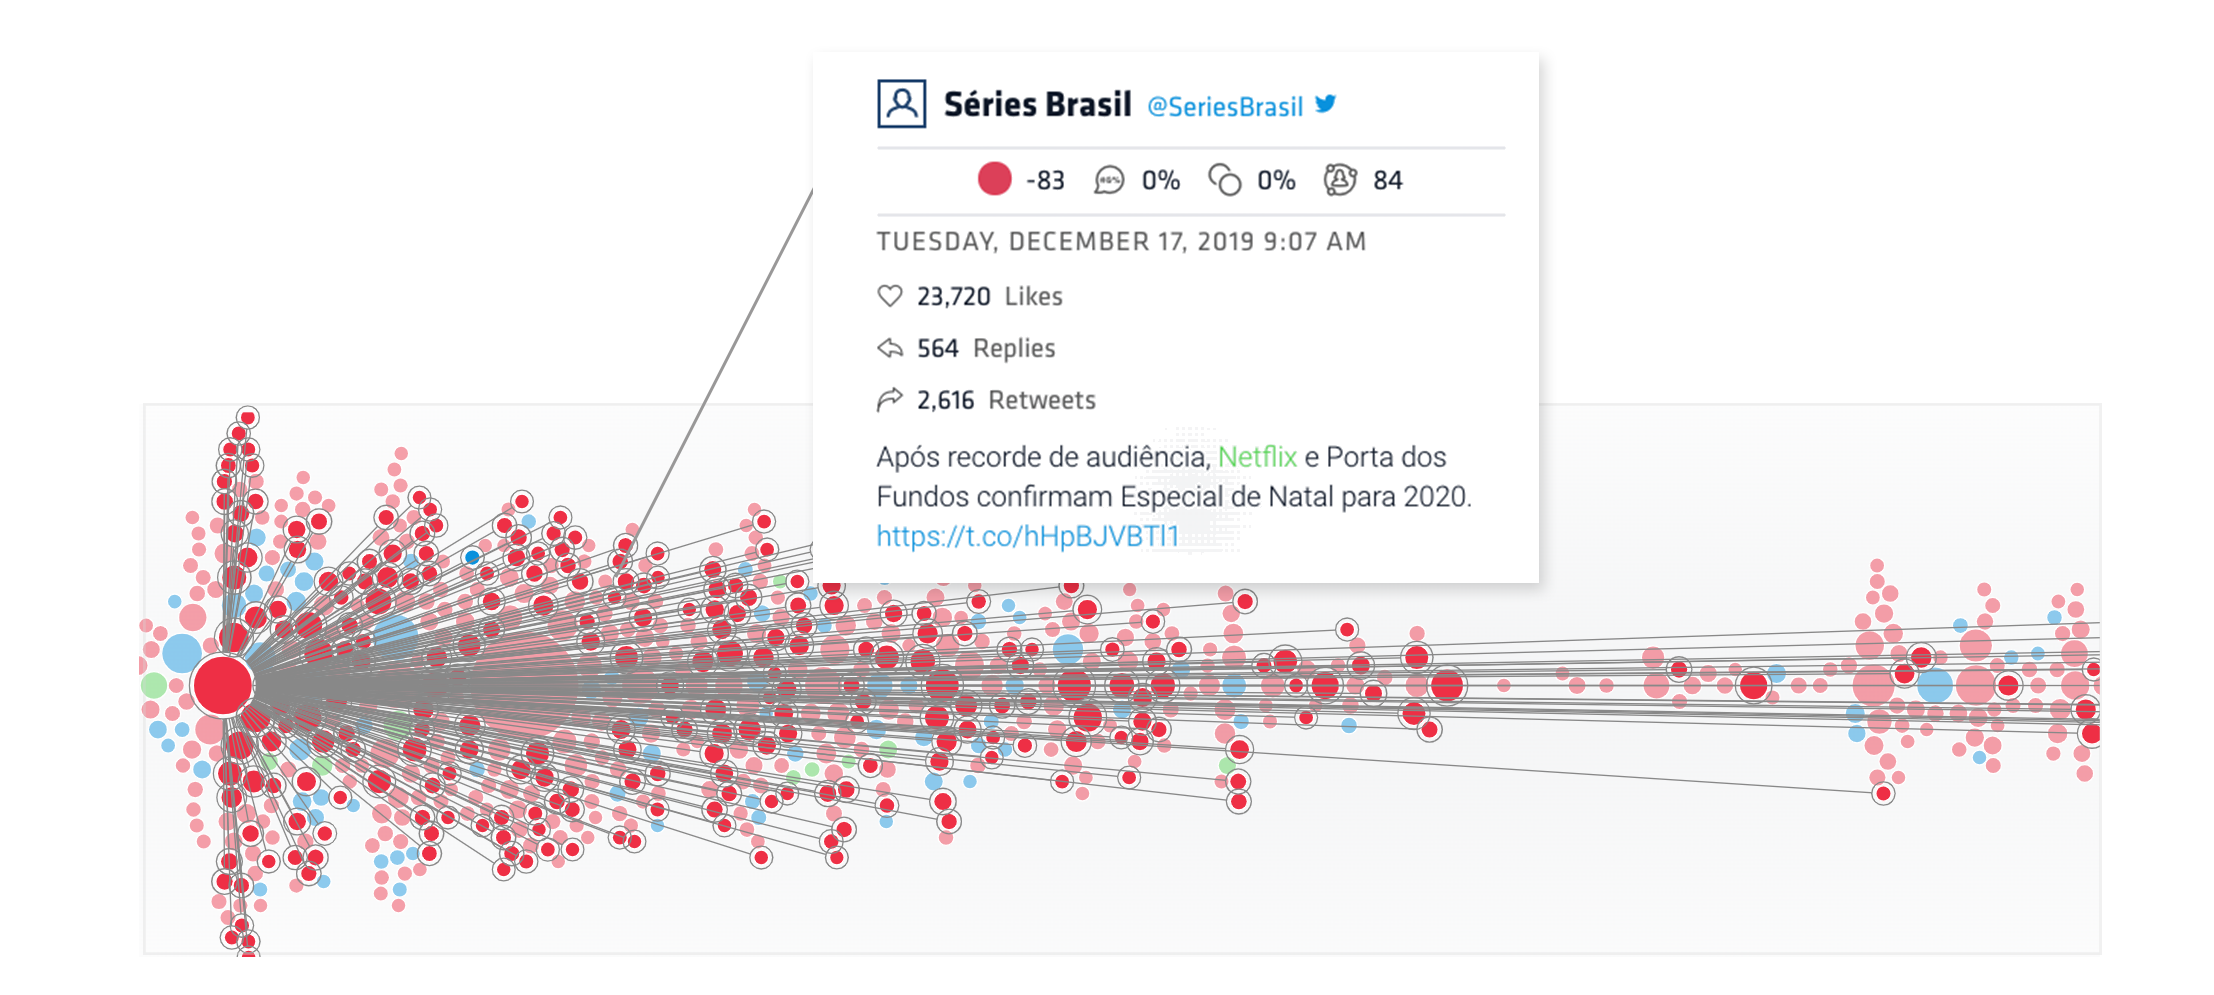 Nuvi Listen shows trends in conversation as well as the sentiment attributed to it. In this case a negative comment, shown as a red dot, is connected to many other negative dots with dark grey lines. These lines show that all these tweets are reshares of the original tweet. The tweet that started it all is by Series Brasil and the tweet which is in Portuguese says Apos recorde de audiencia, Neflix e Porta dos Fundos confirmam Especial de Natal para 2020.